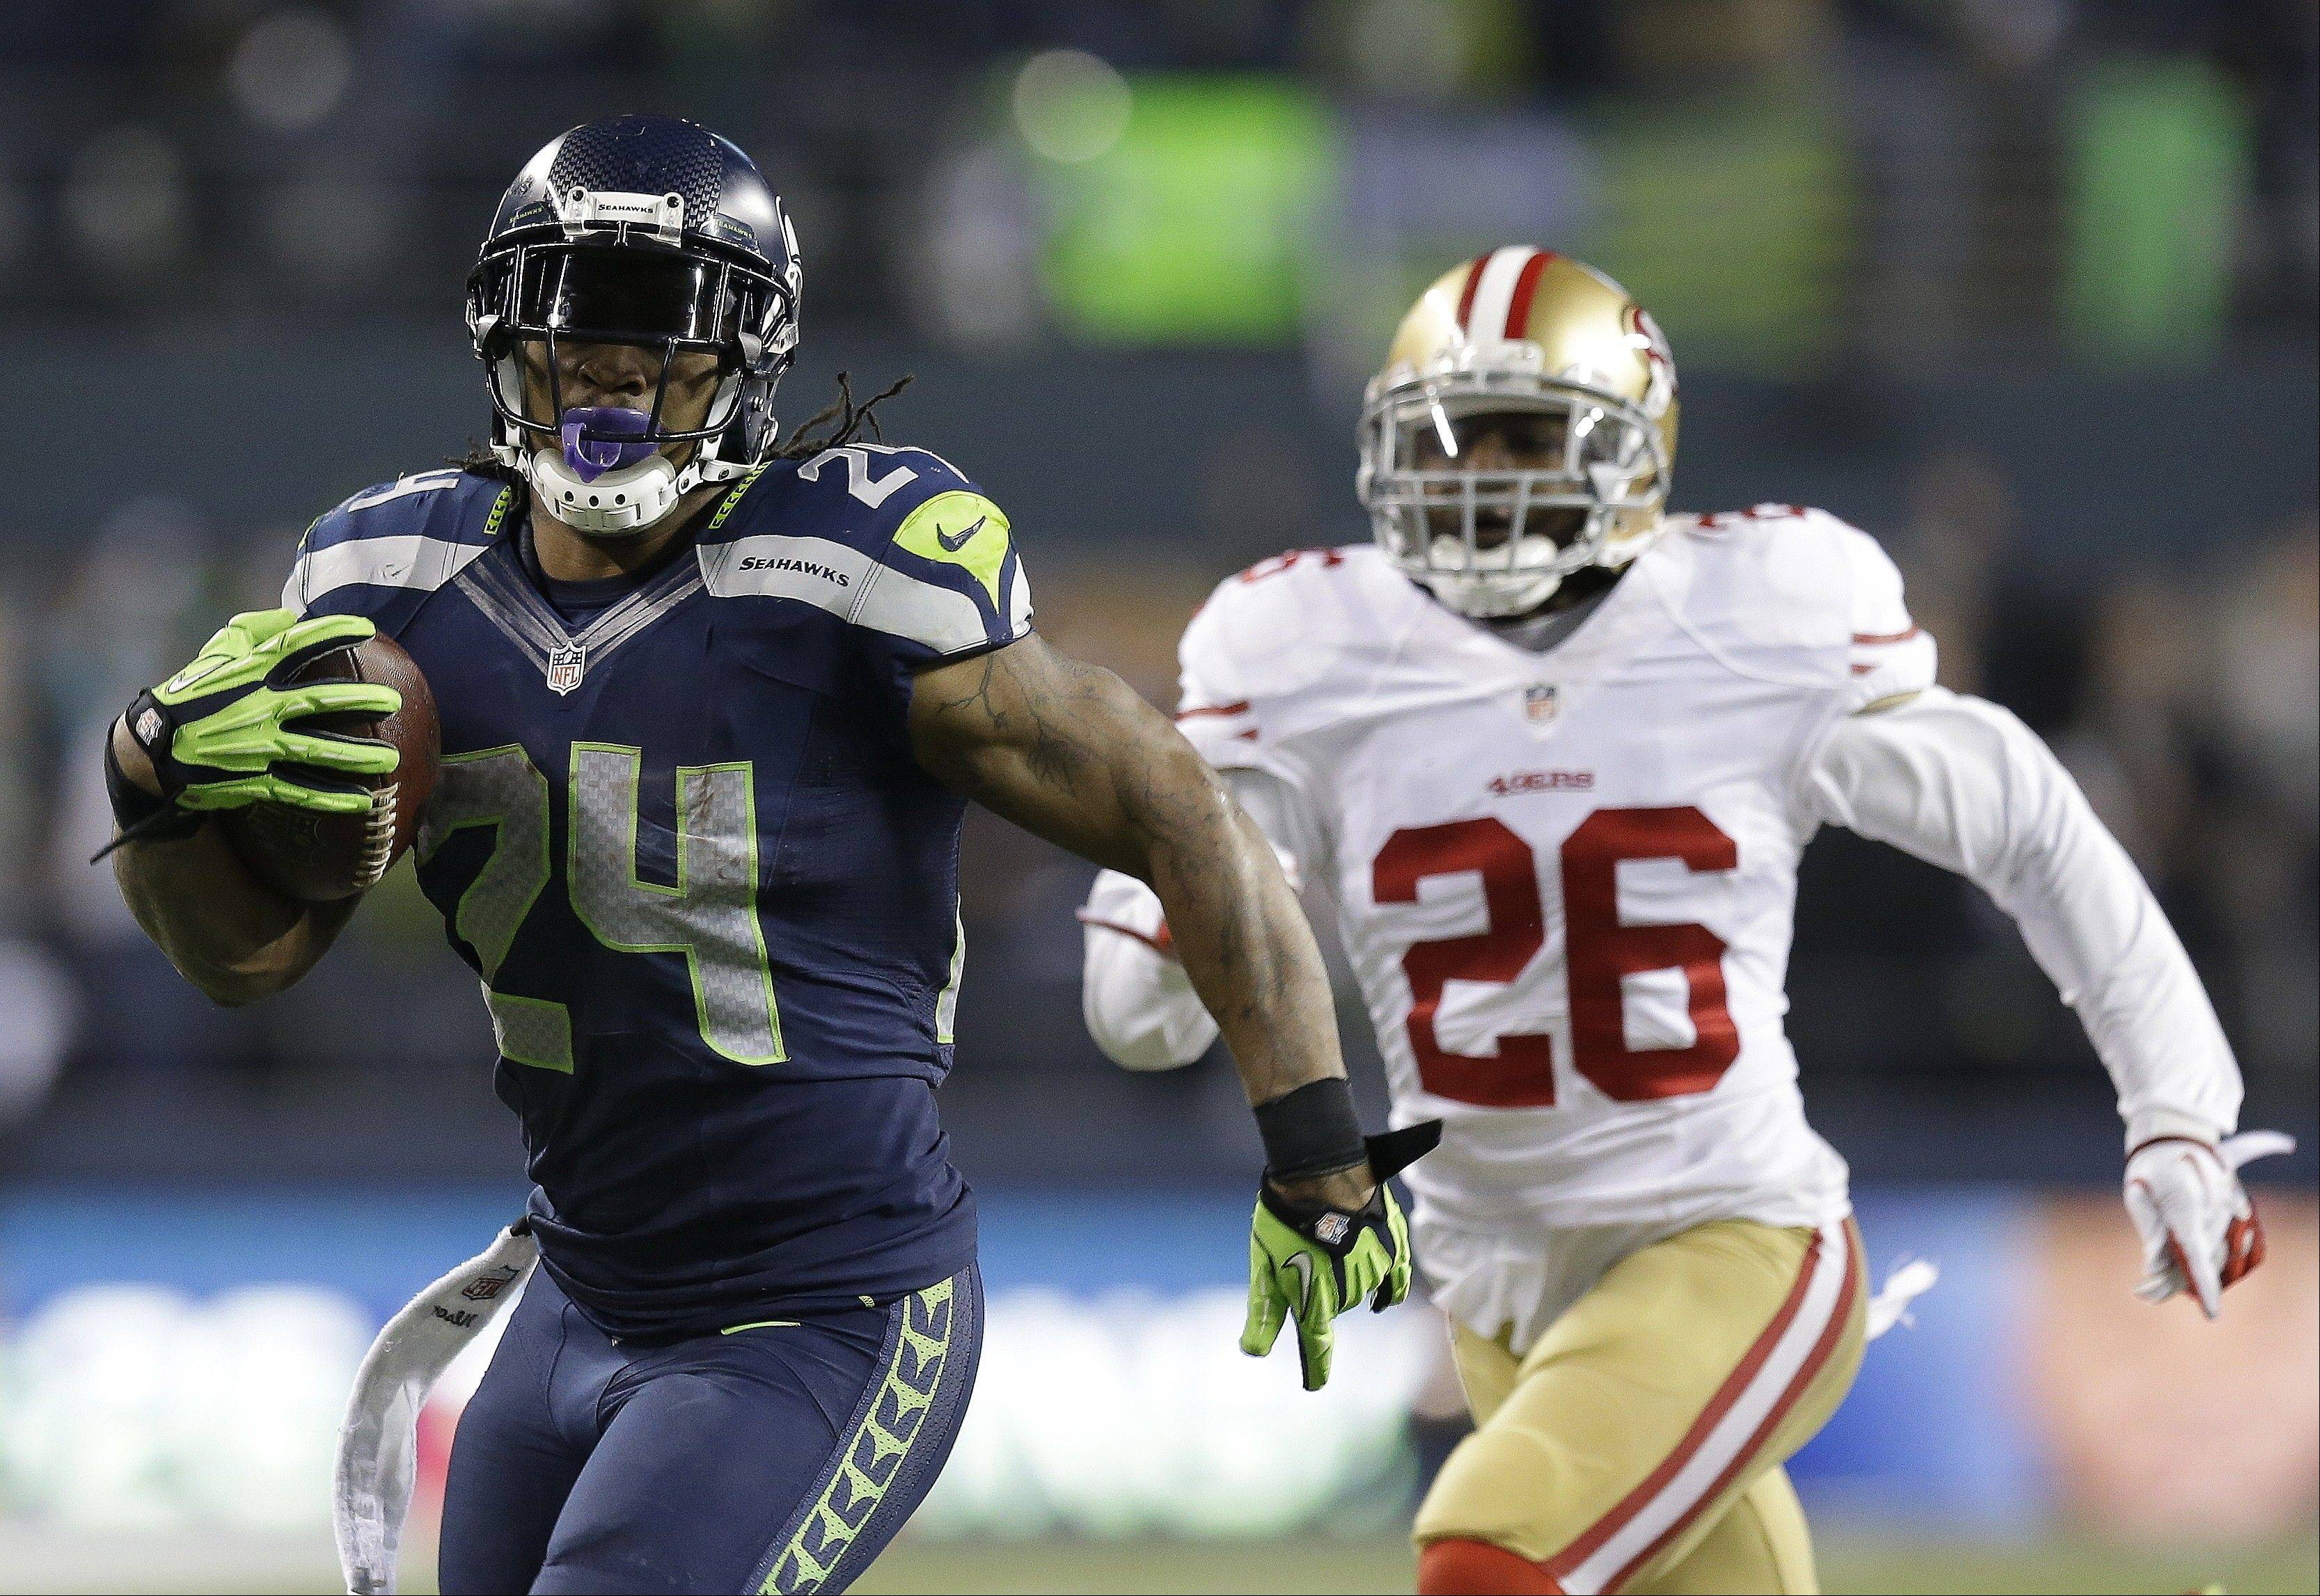 Seattle Seahawks' Marshawn Lynch (24) breaks away from San Francisco 49ers' Tramaine Brock (26) for a touch-down run during the second half of the NFL football NFC Championship game, Sunday, Jan. 19, 2014, in Seattle. (AP Photo/Elaine Thompson)